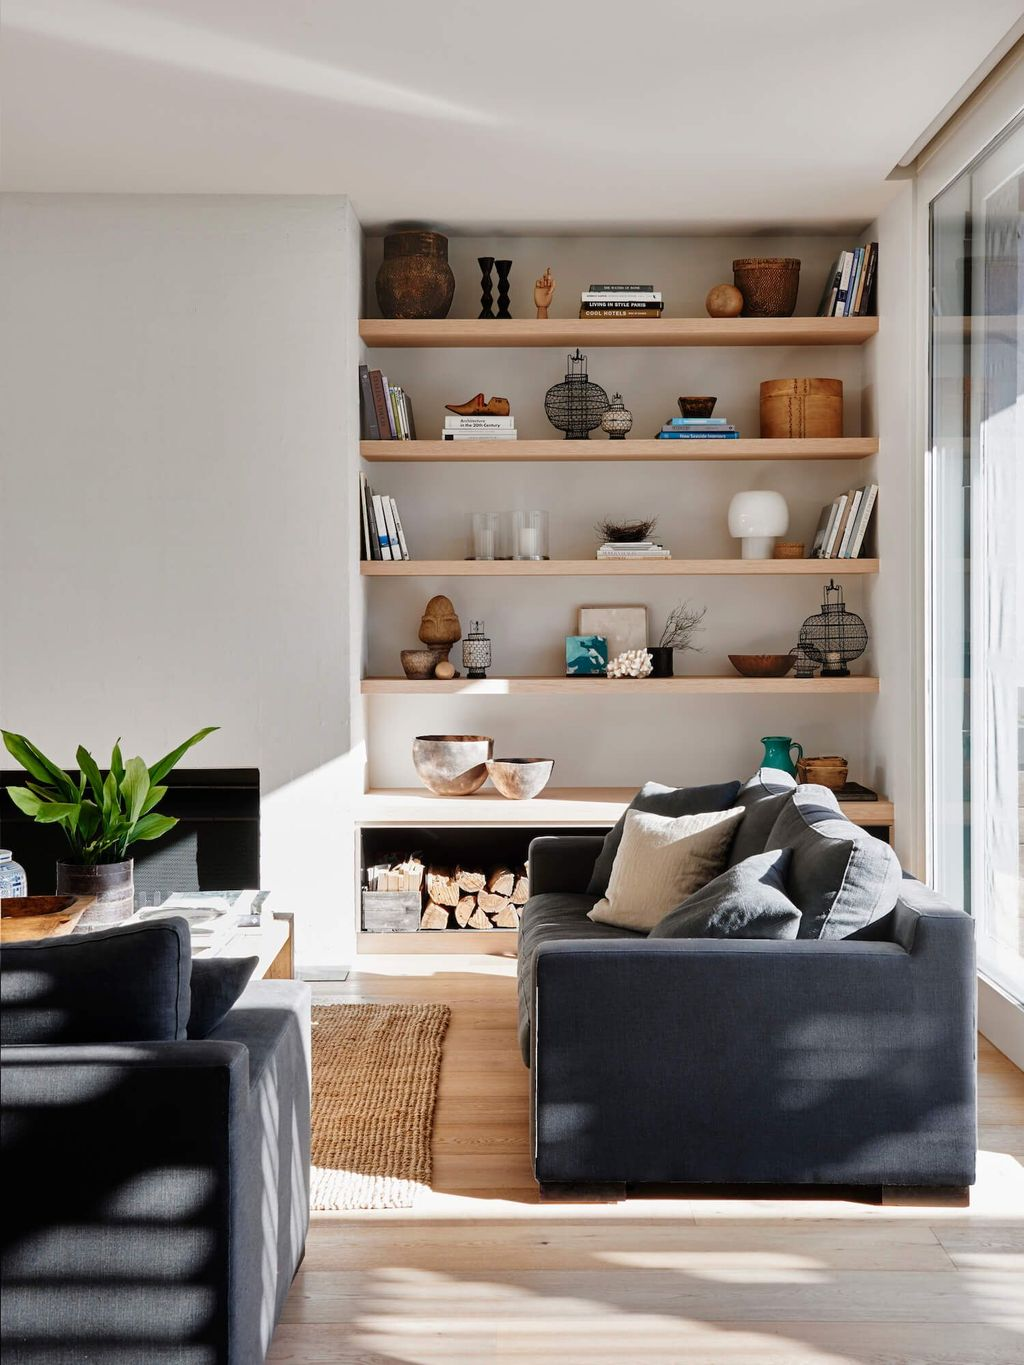 Stunning Interior Design Ideas You Should Try 23